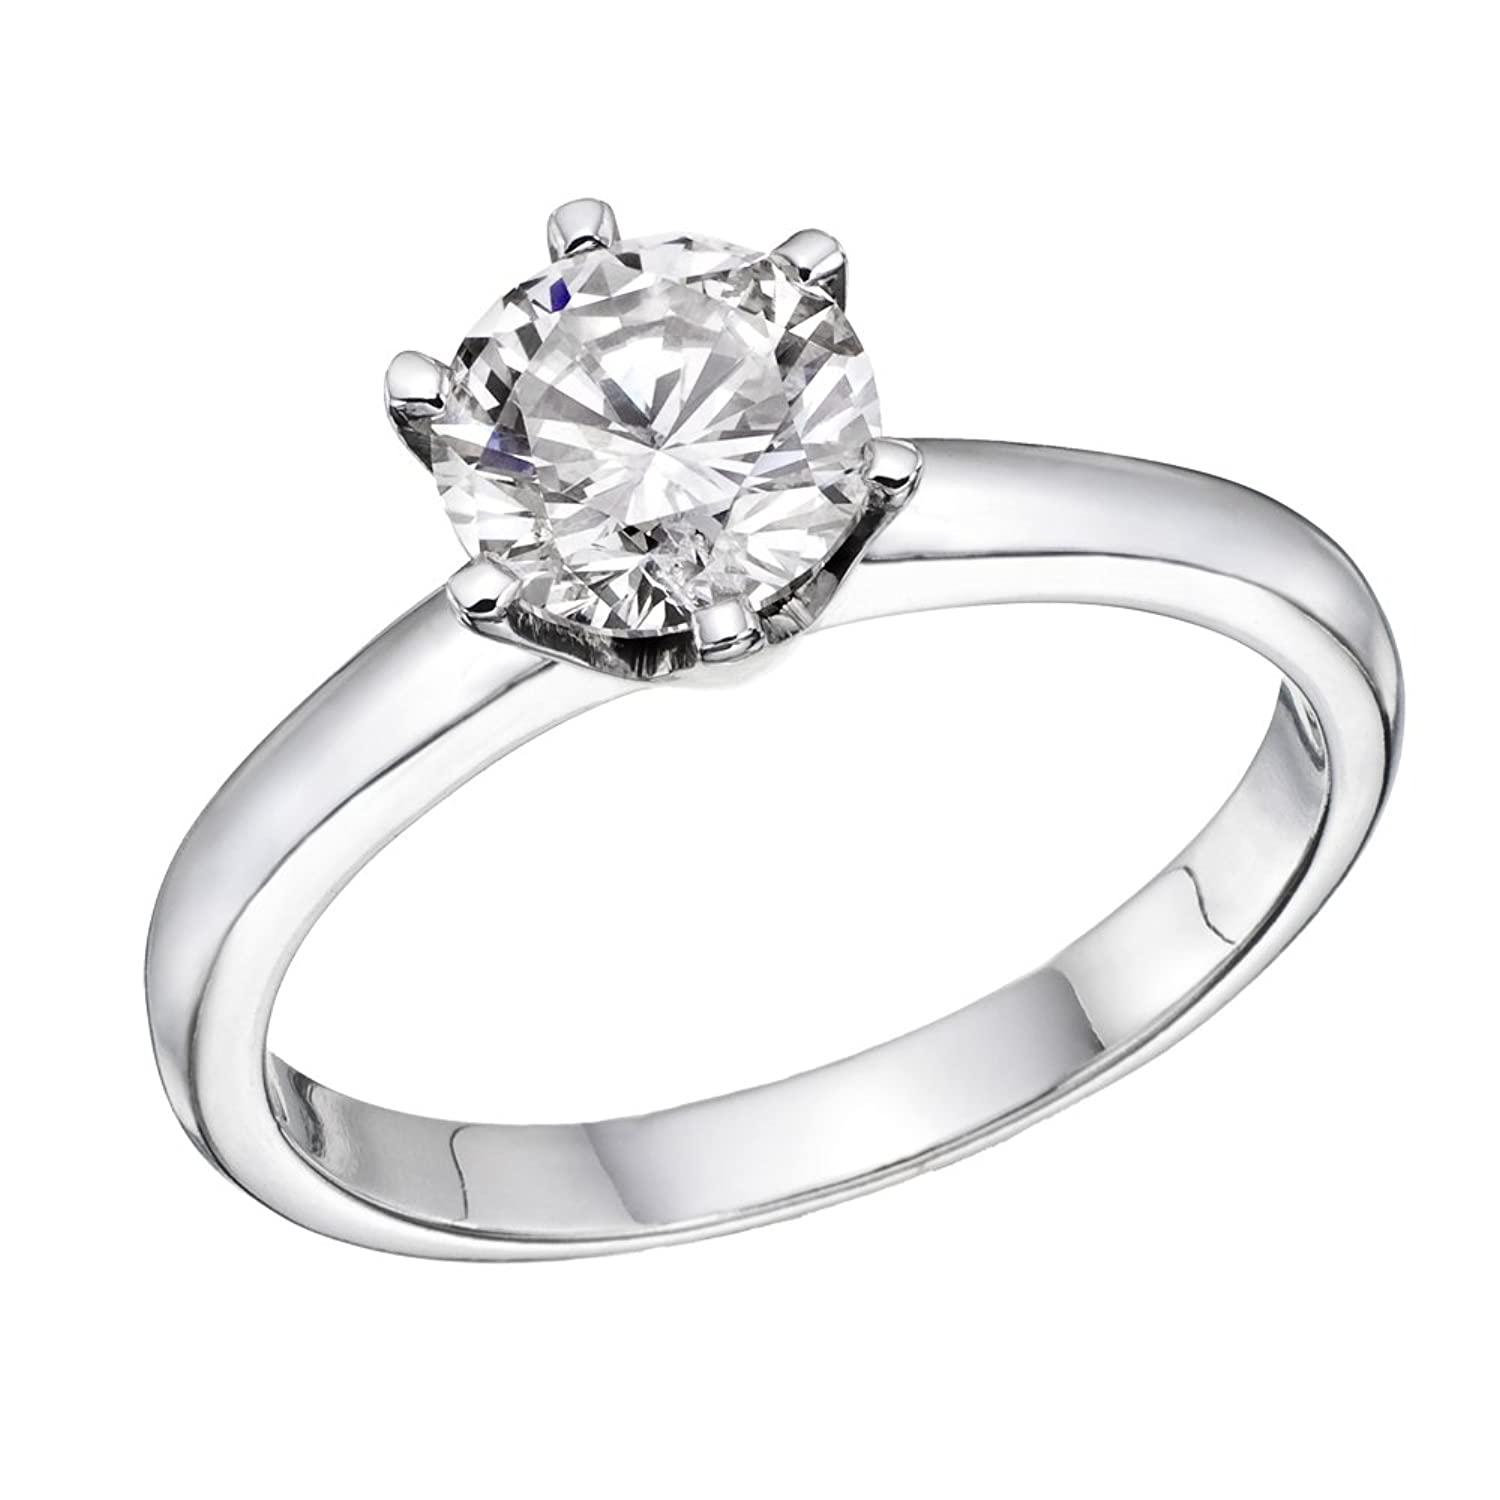 1/2 ct IGI Certified Diamond Engagement Ring in 14K White Gold (1/2 ct, L-M Color, SI1-SI2 Clarity)